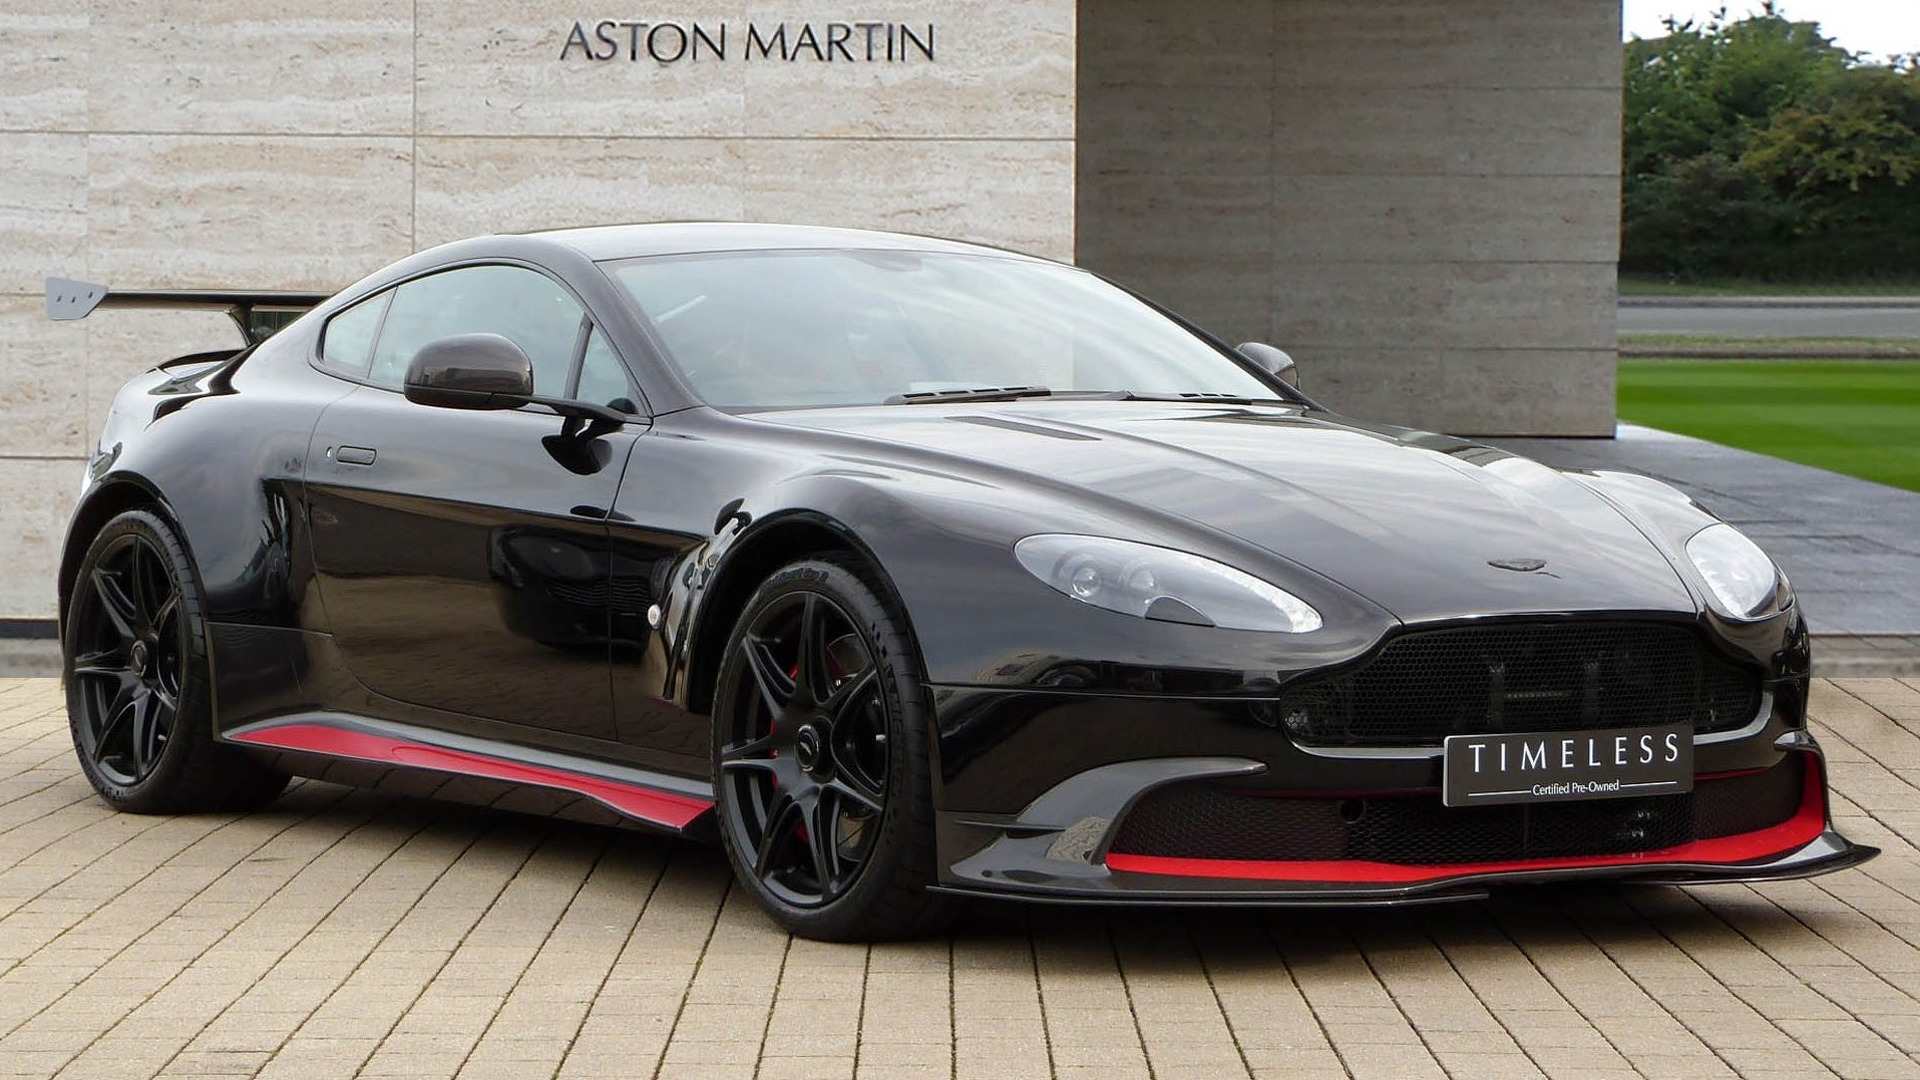 Dealers Are Making A Cheeky Profit On This Rare Aston Martin - Aston martin gt